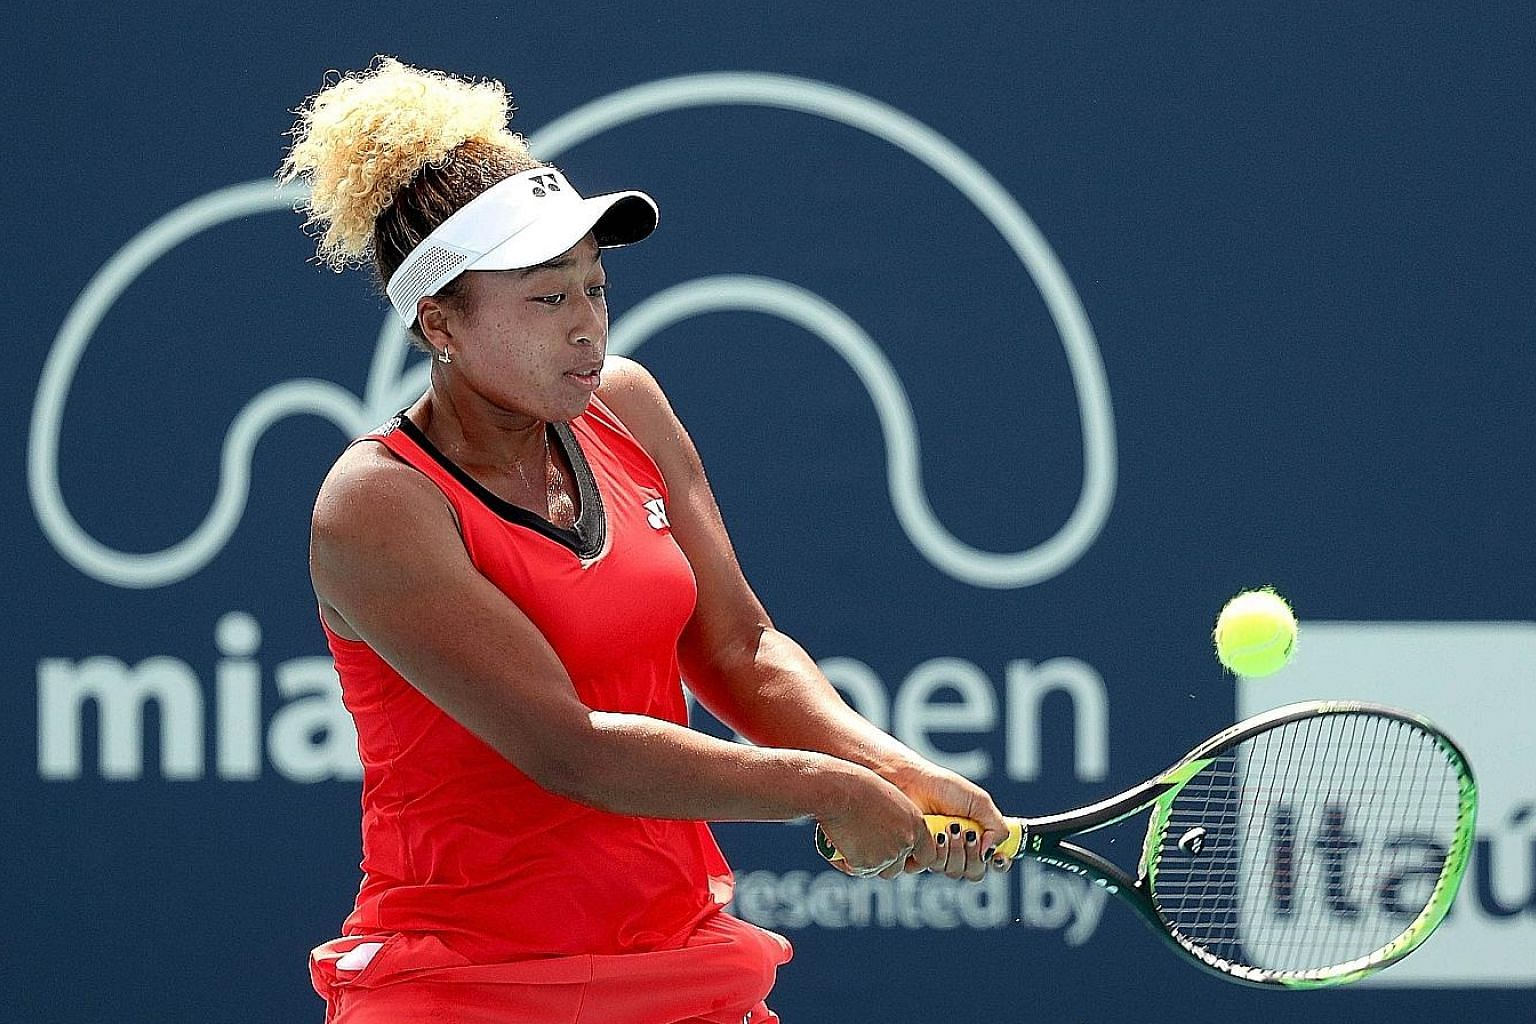 Mari Osaka returning a shot to fellow wild card Whitney Osuigwe during the Miami Open at Hard Rock Stadium on Thursday in Miami Gardens, Florida. Mari acquitted herself well despite a 6-2, 6-4 loss.